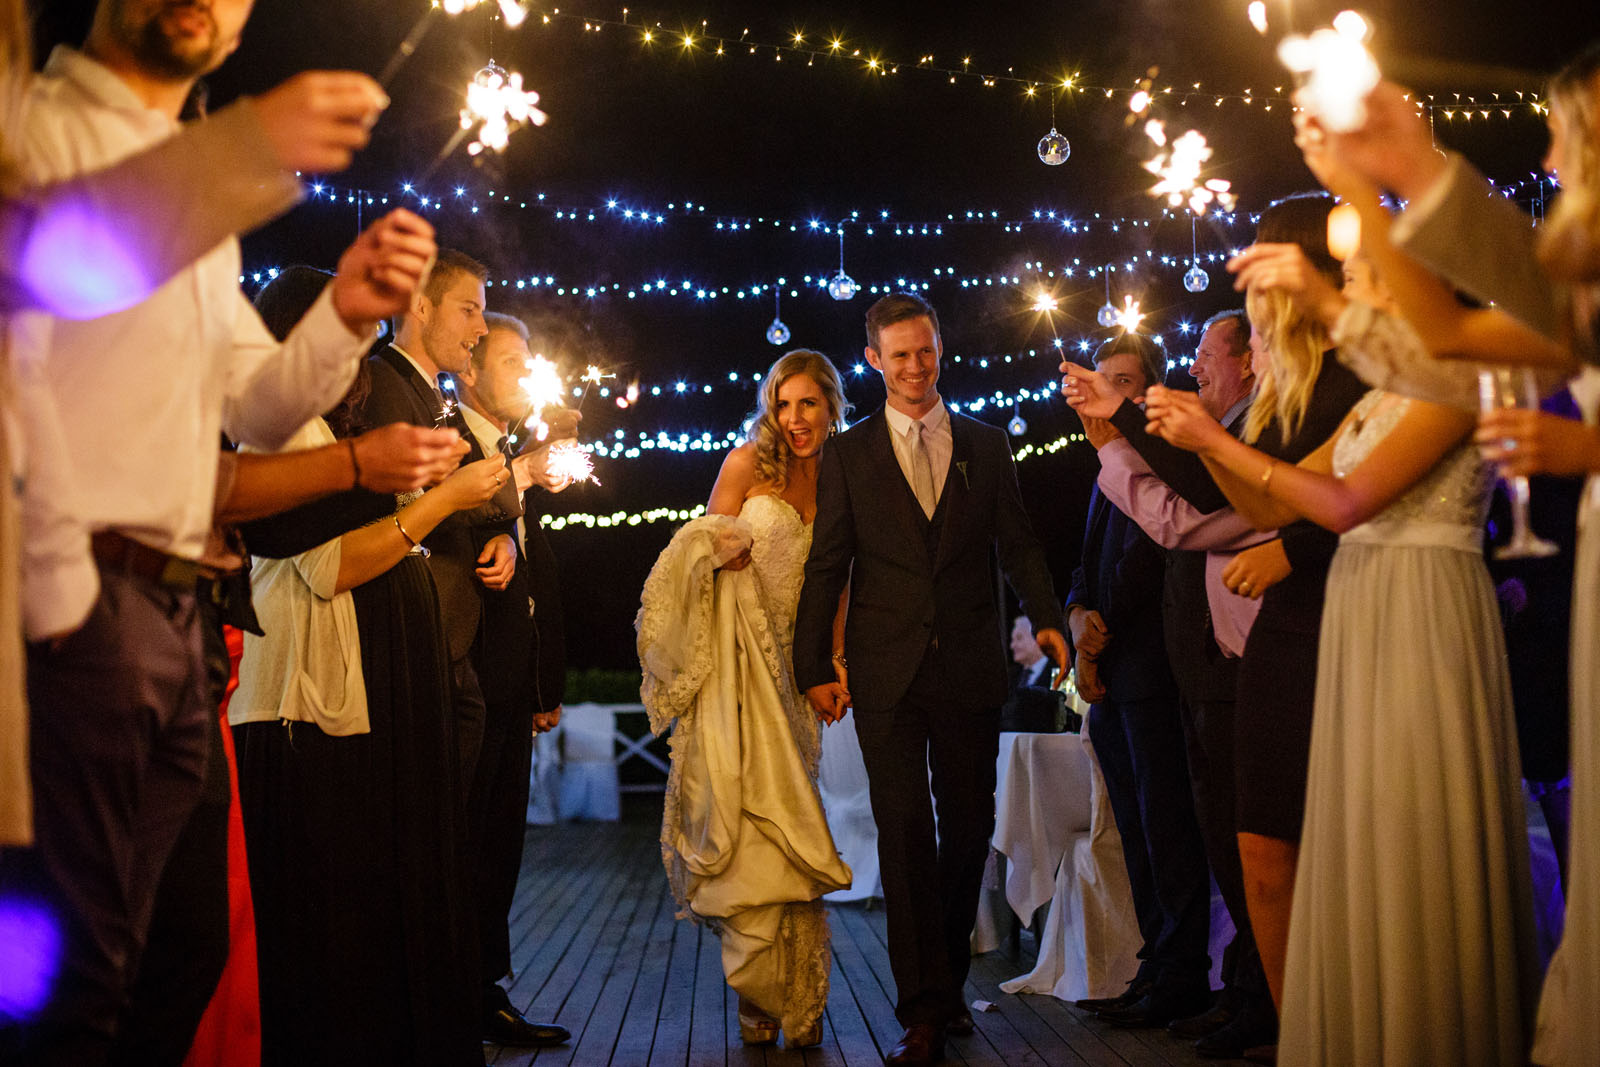 mount_tamborine_wedding_photographer_288